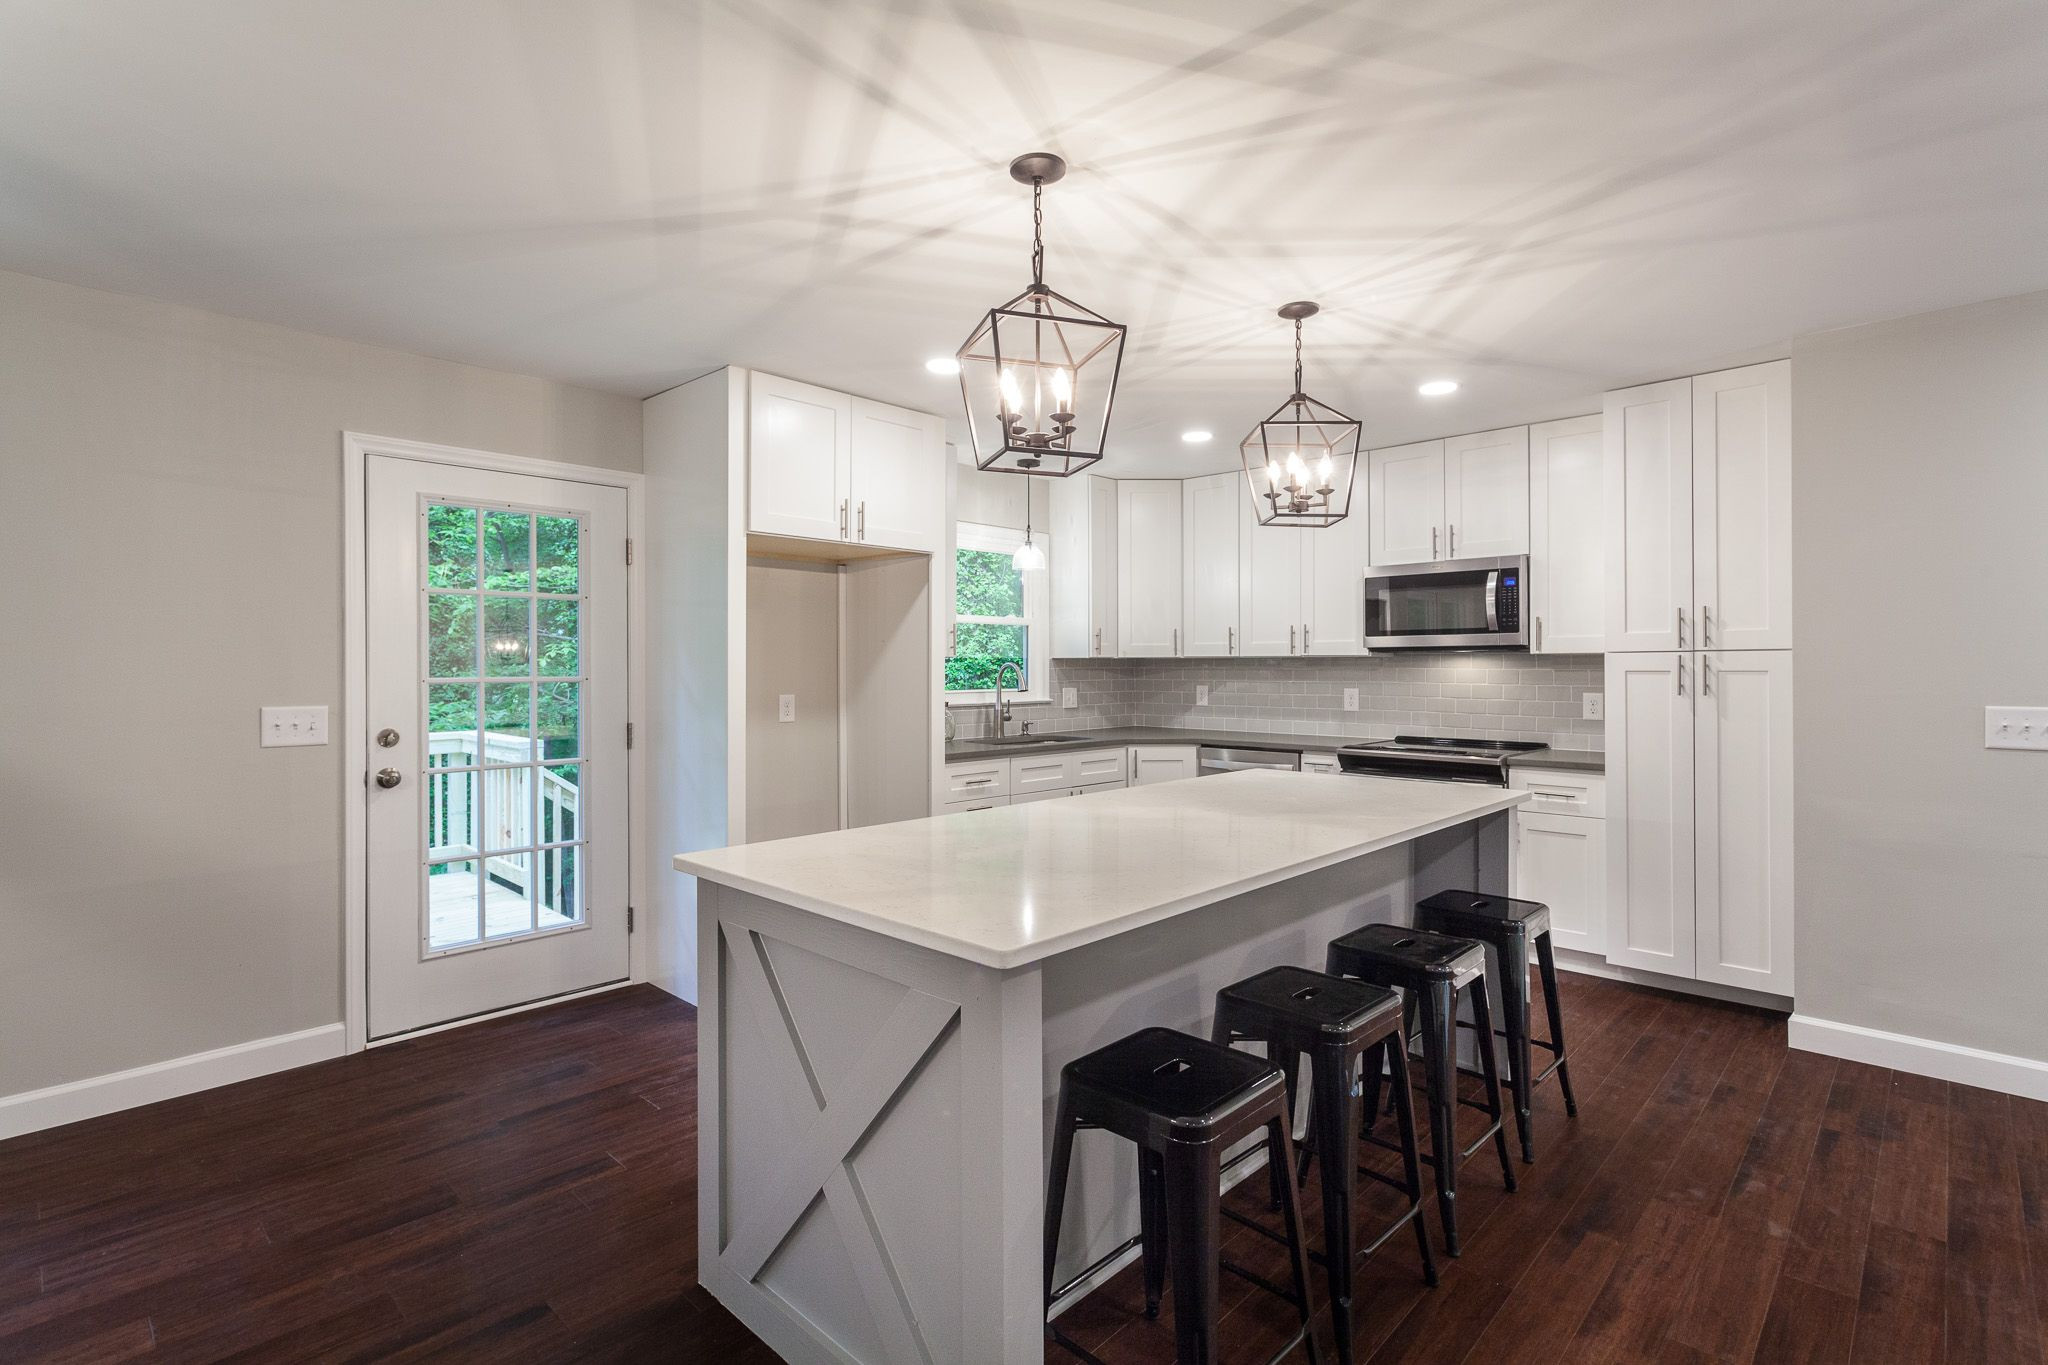 Kitchen Remodeling Raleigh Nc  CityRock Countertops & Remodeling in Raleigh NC